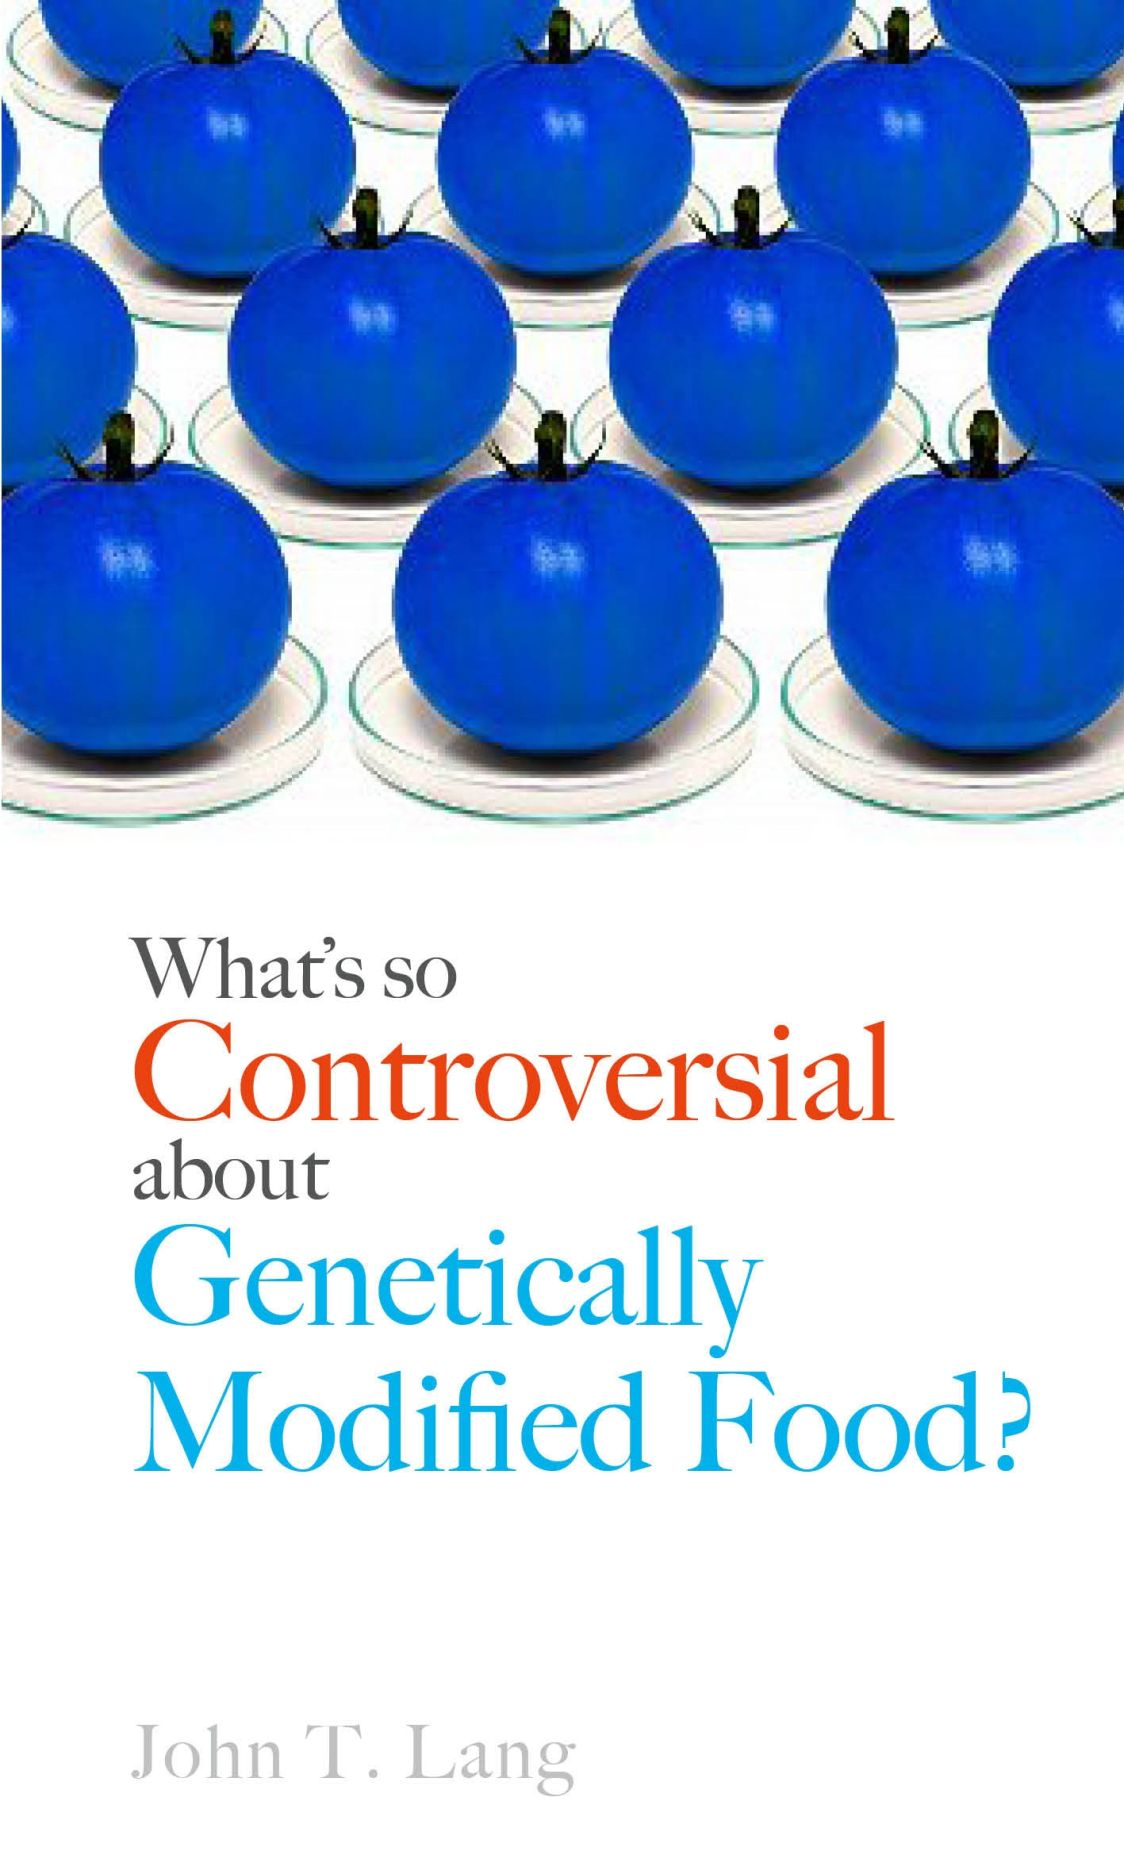 What's So Controversial about Genetically Modified Food?